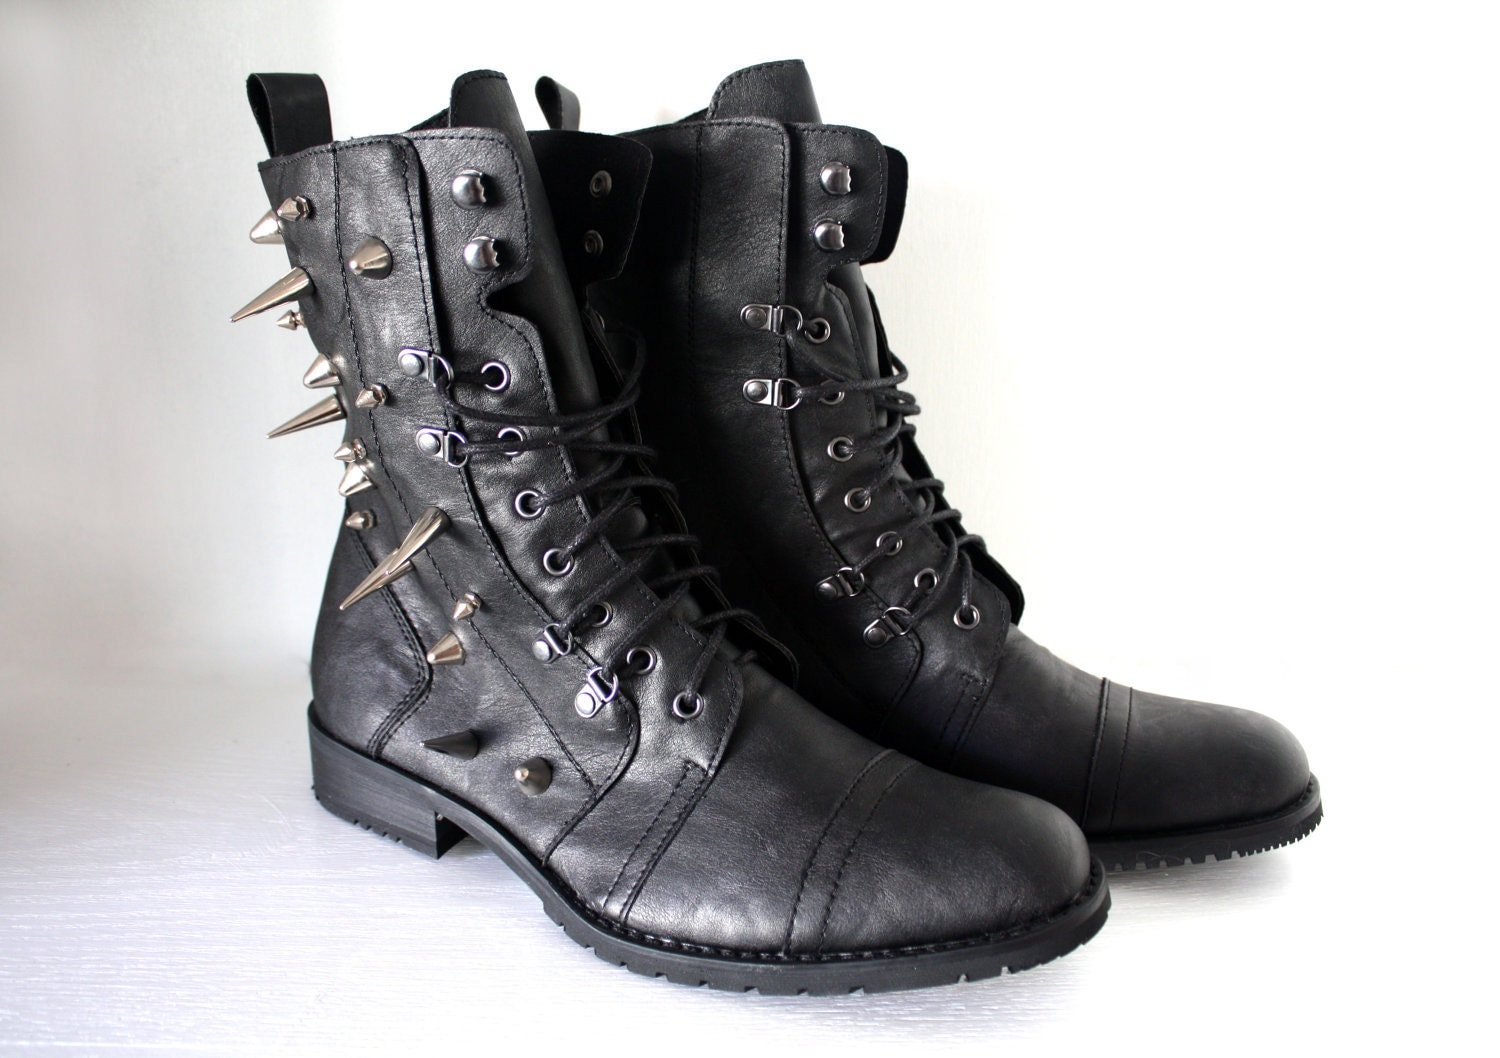 spiked faux leather combat boots black